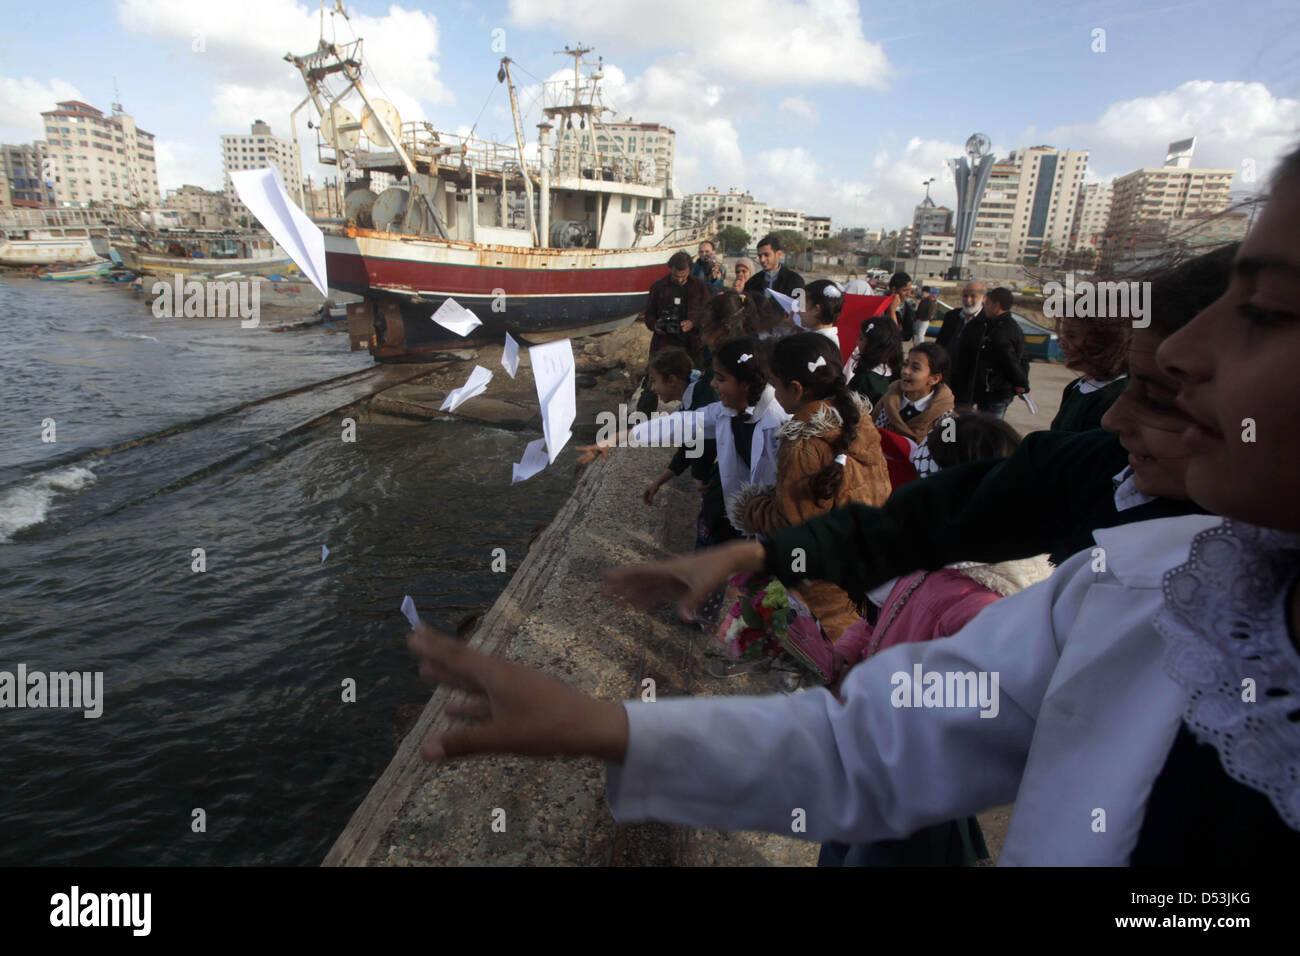 Gaza City, Gaza Strip, Palestinian Territory. 23rd March 2013. Palestinian schoolgirls throw letters at the sea - Stock Image